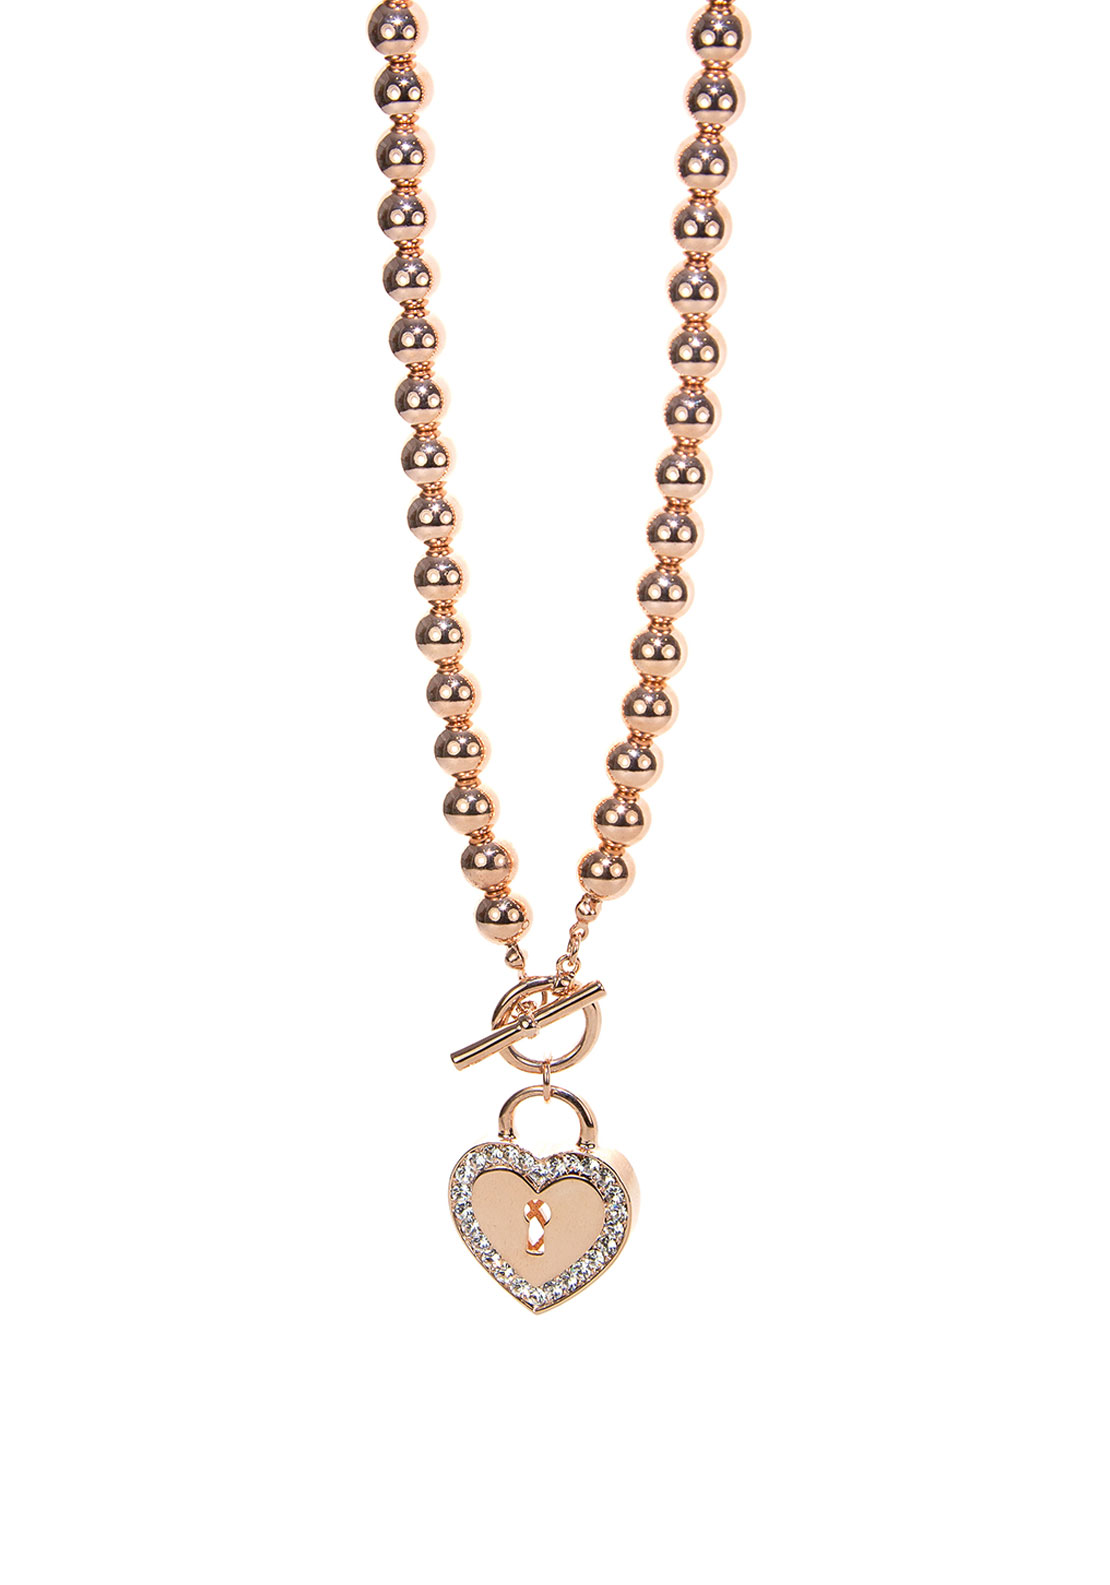 Absolute Jewellery Heart Pendant Necklace